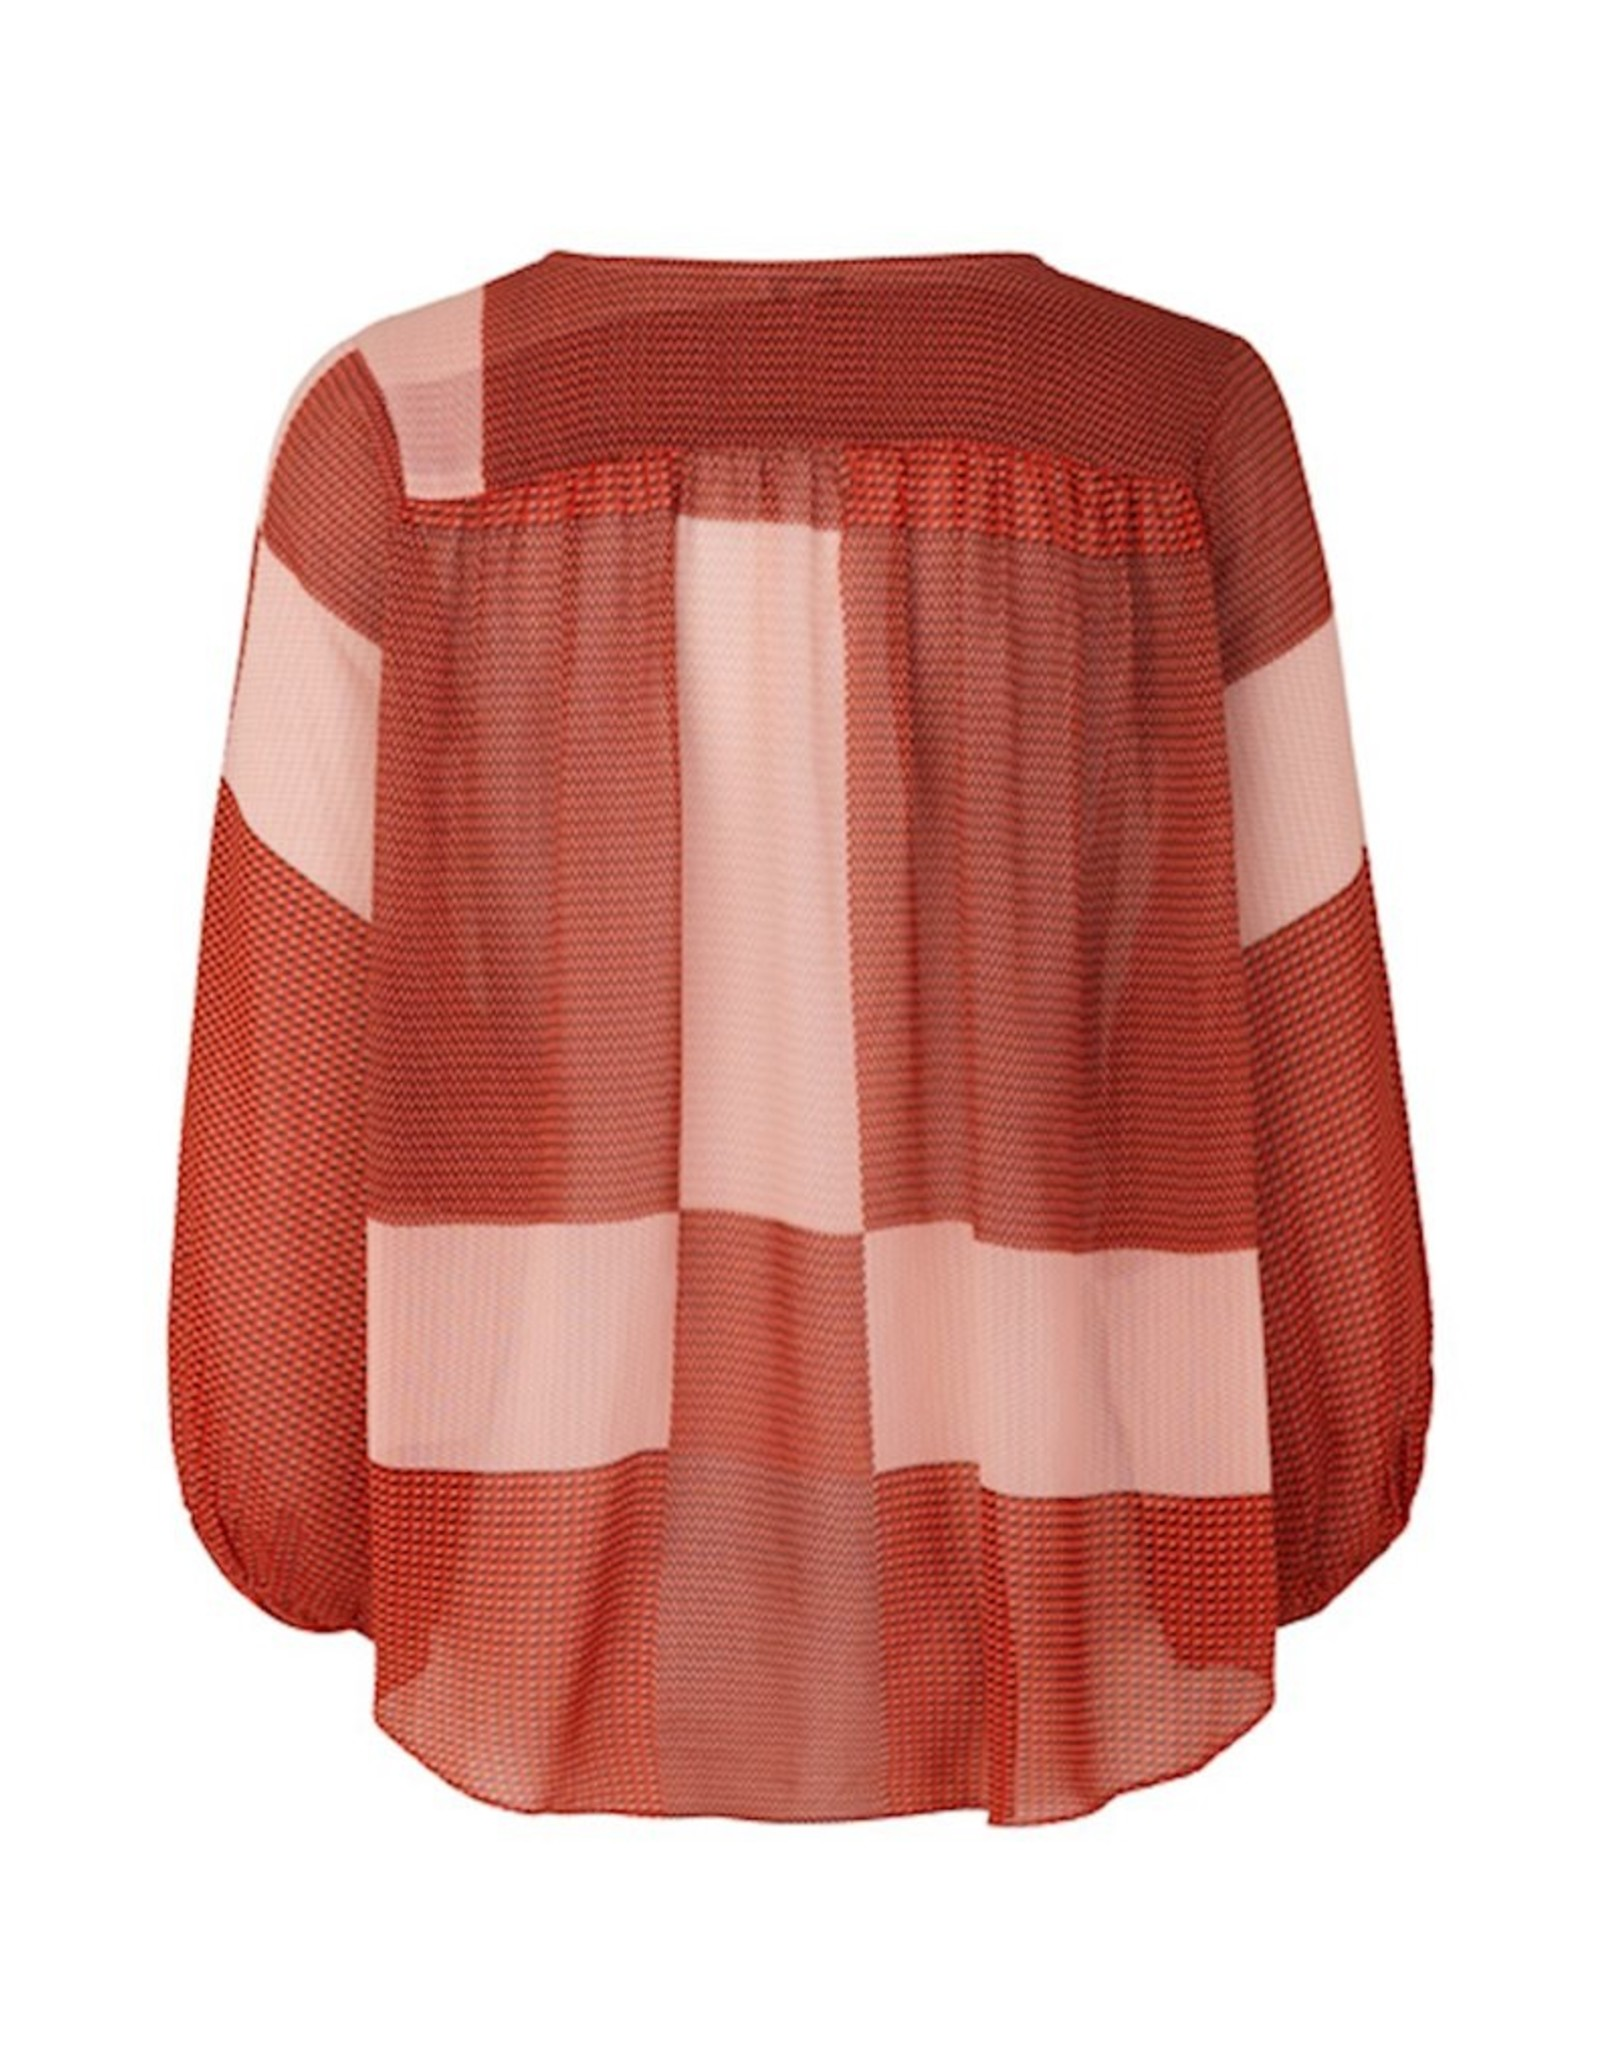 BLOUSE LAURETTE